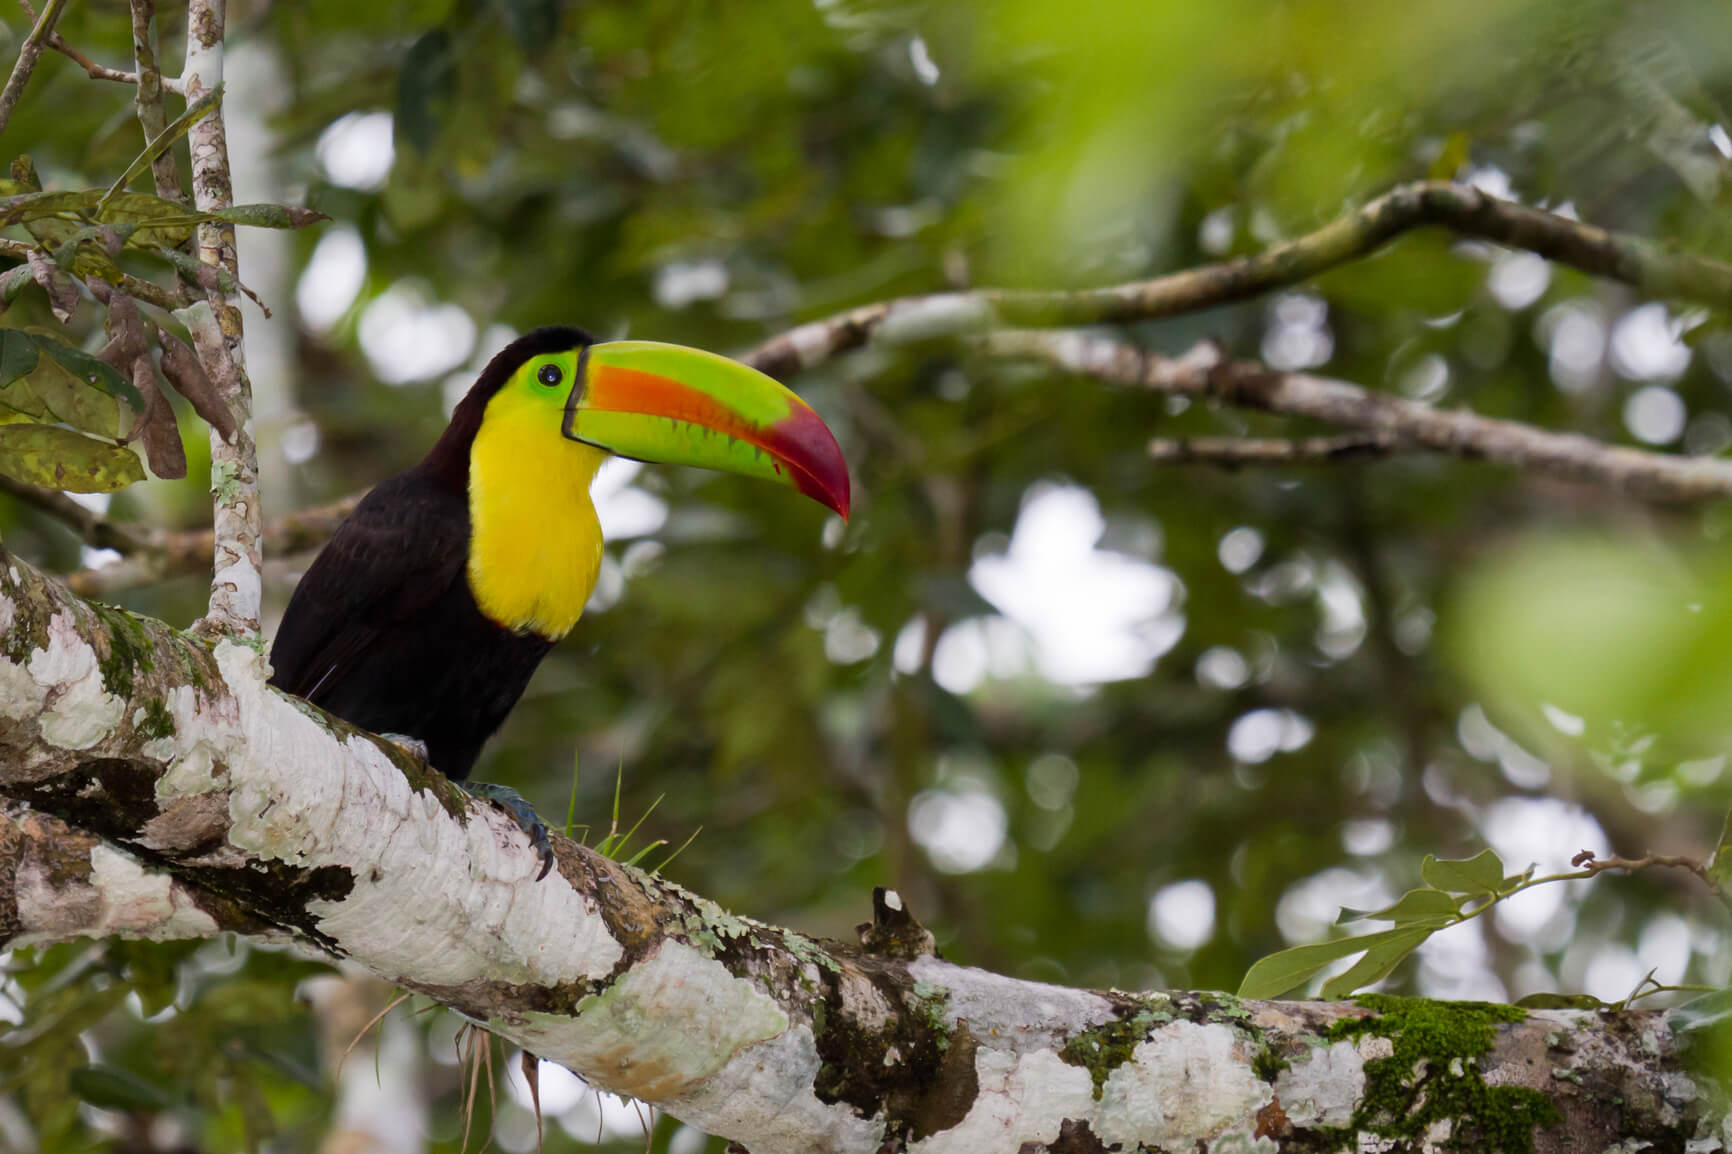 Toronto, Canada to Liberia, Costa Rica for only $307 CAD roundtrip